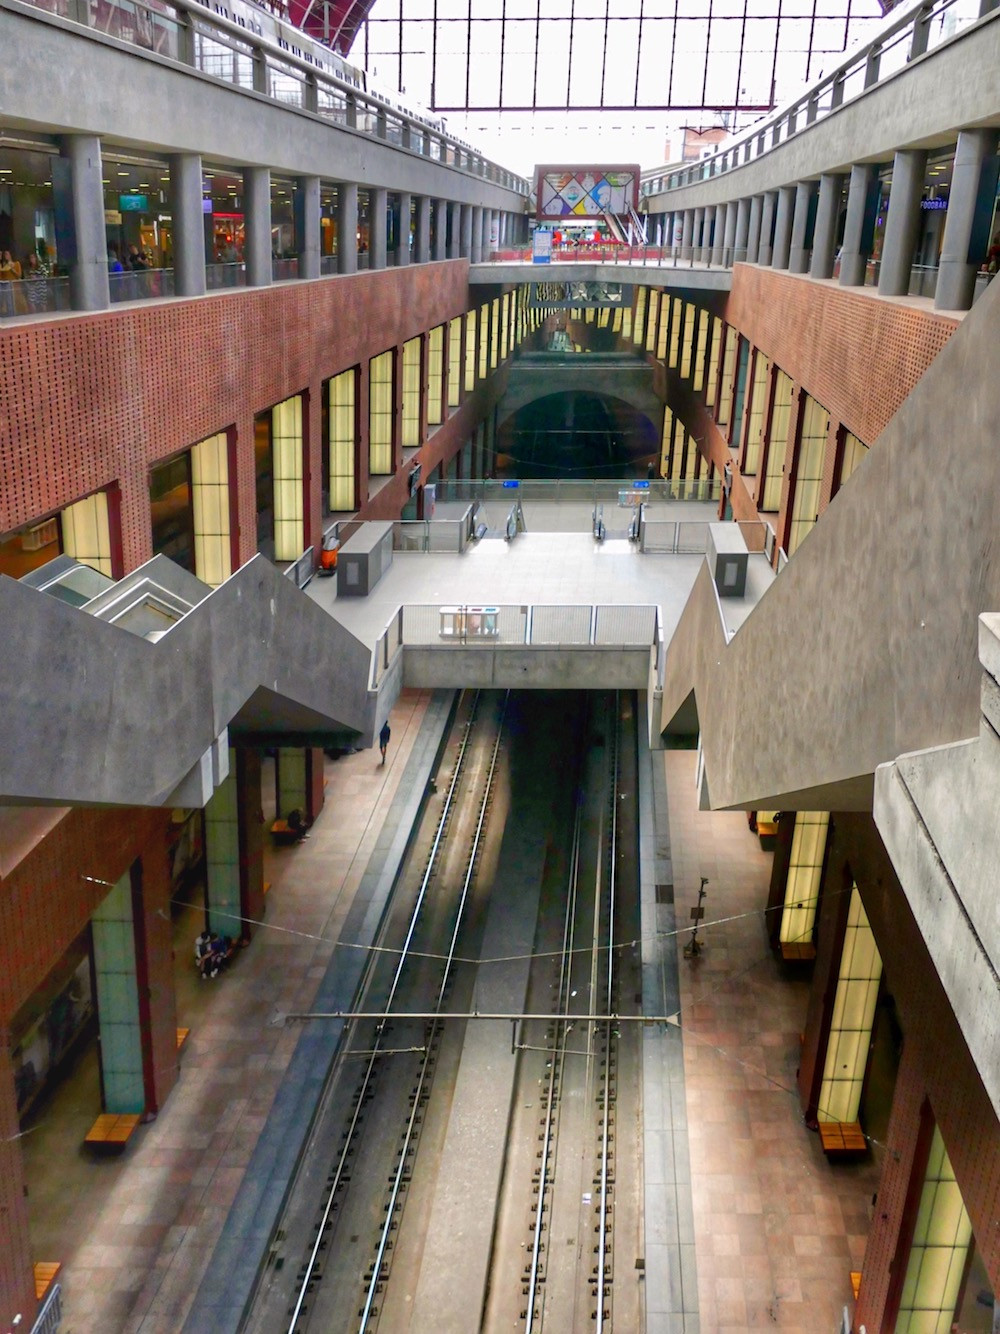 Different levels at Antwerpen Centraal railway station |curlytraveller.com